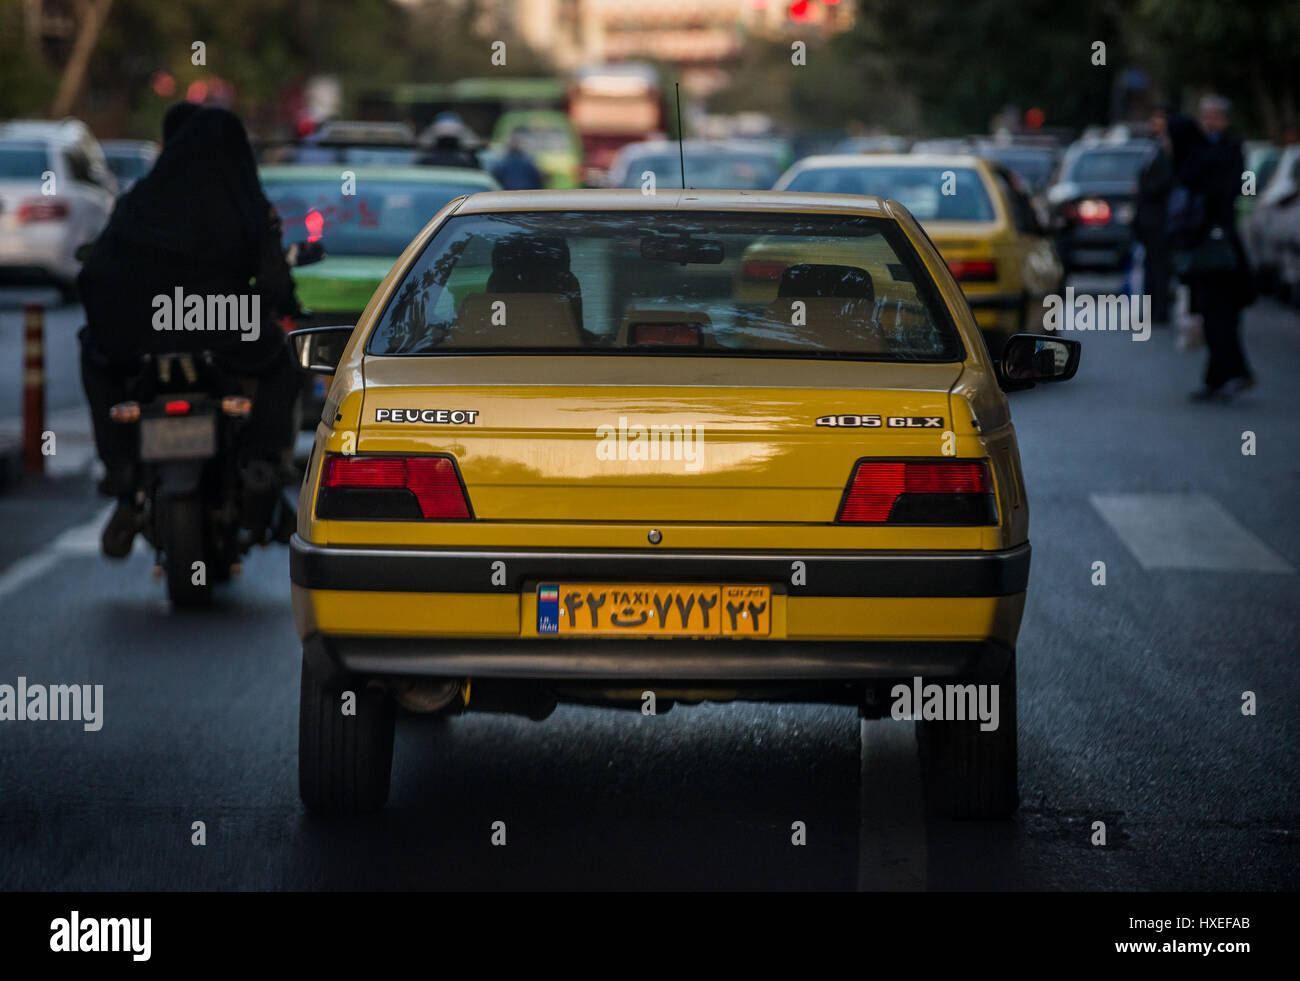 Yellow Peugeot cab on a street in Tehran city, capital of Iran and Tehran Province - Stock Image